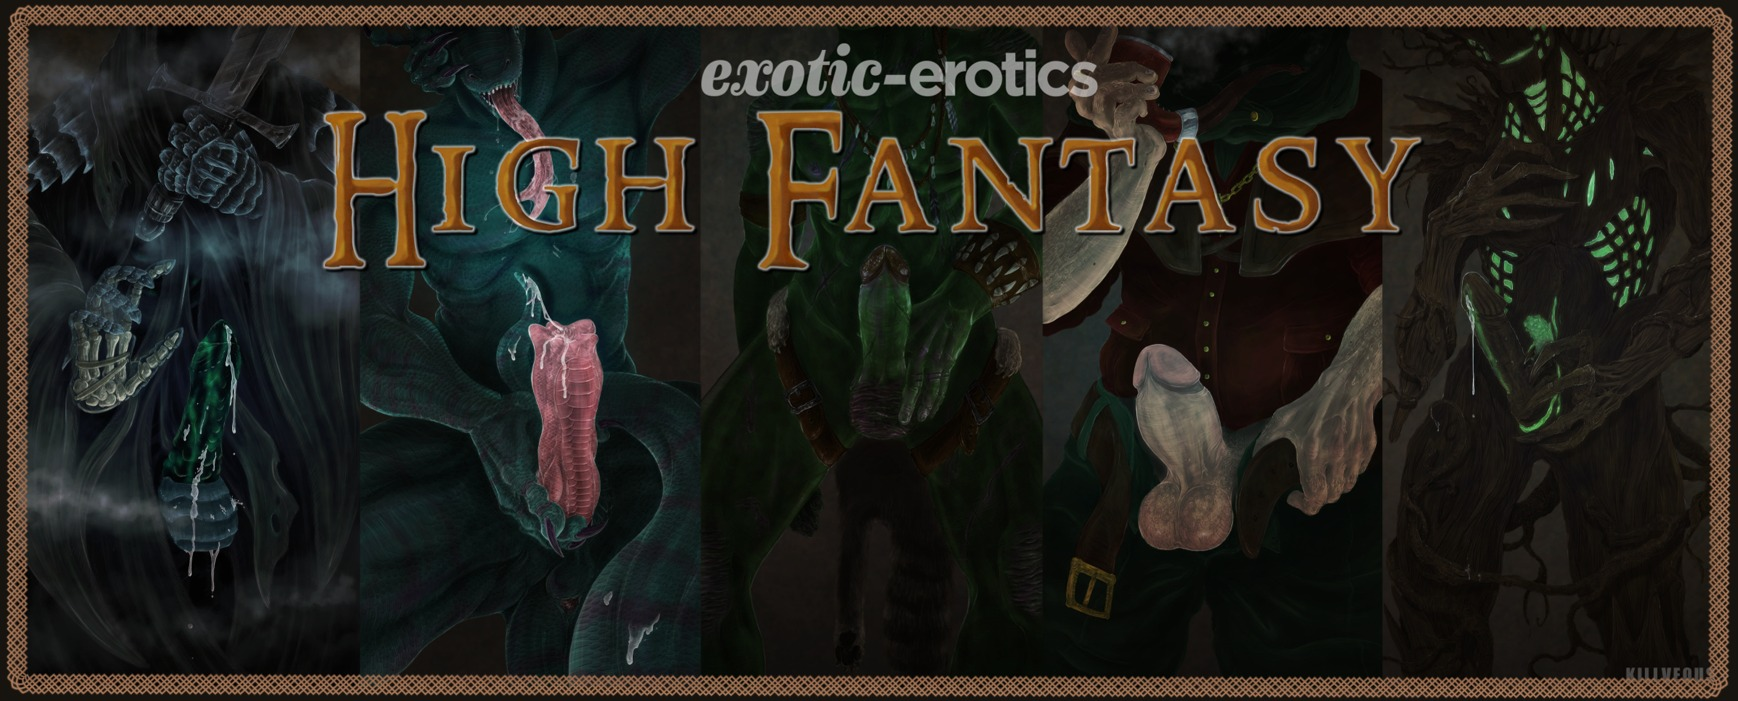 https://www.exotic-erotics.com/store/images/newsletters/HighFantasycollage.jpg